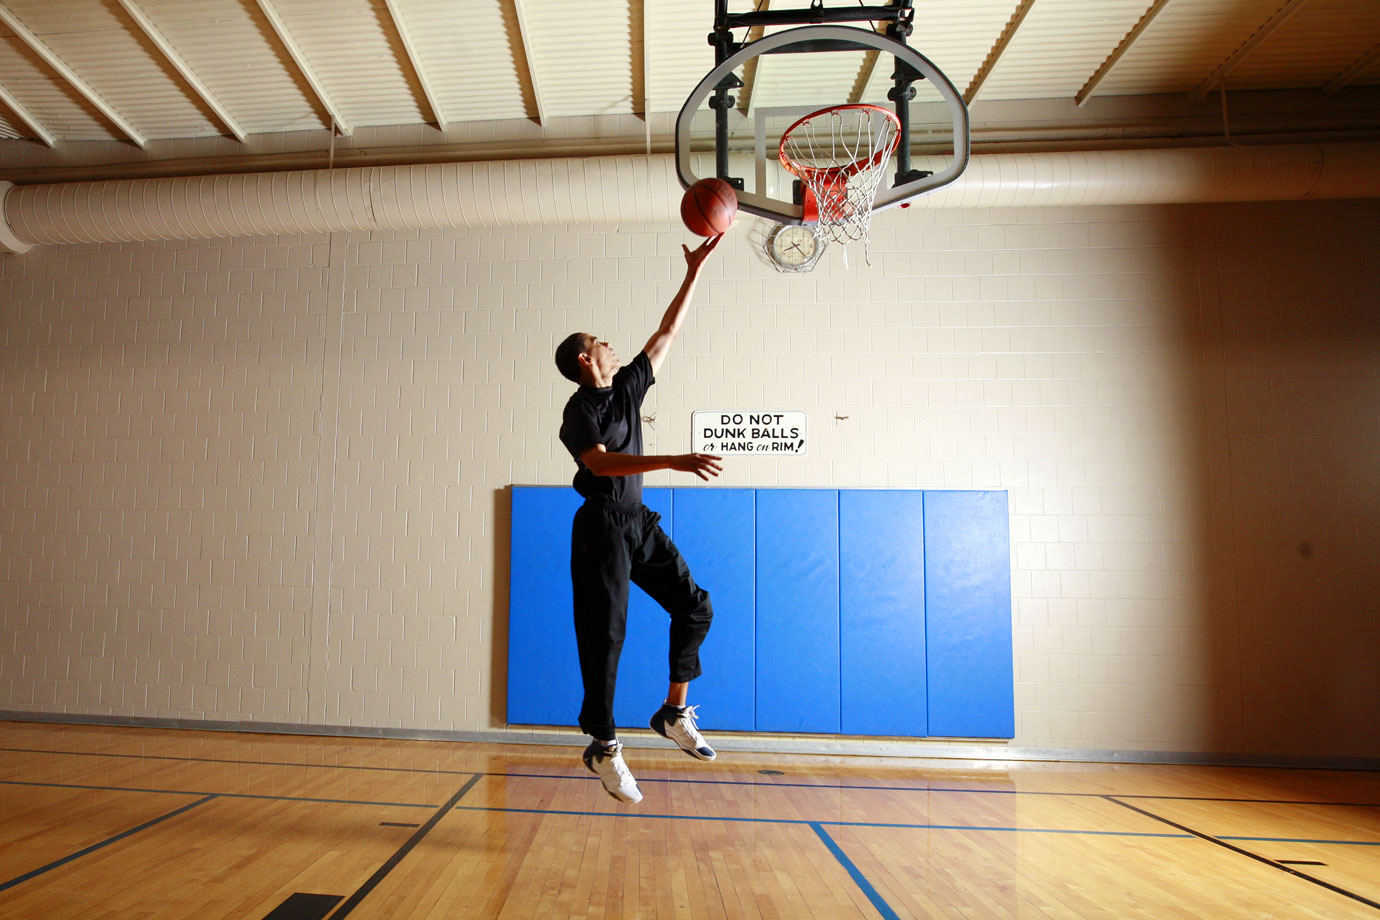 Senator Barack Obama shoots a layup in 2007 at Spencer Family YMCA in Des Moines, Iowa.